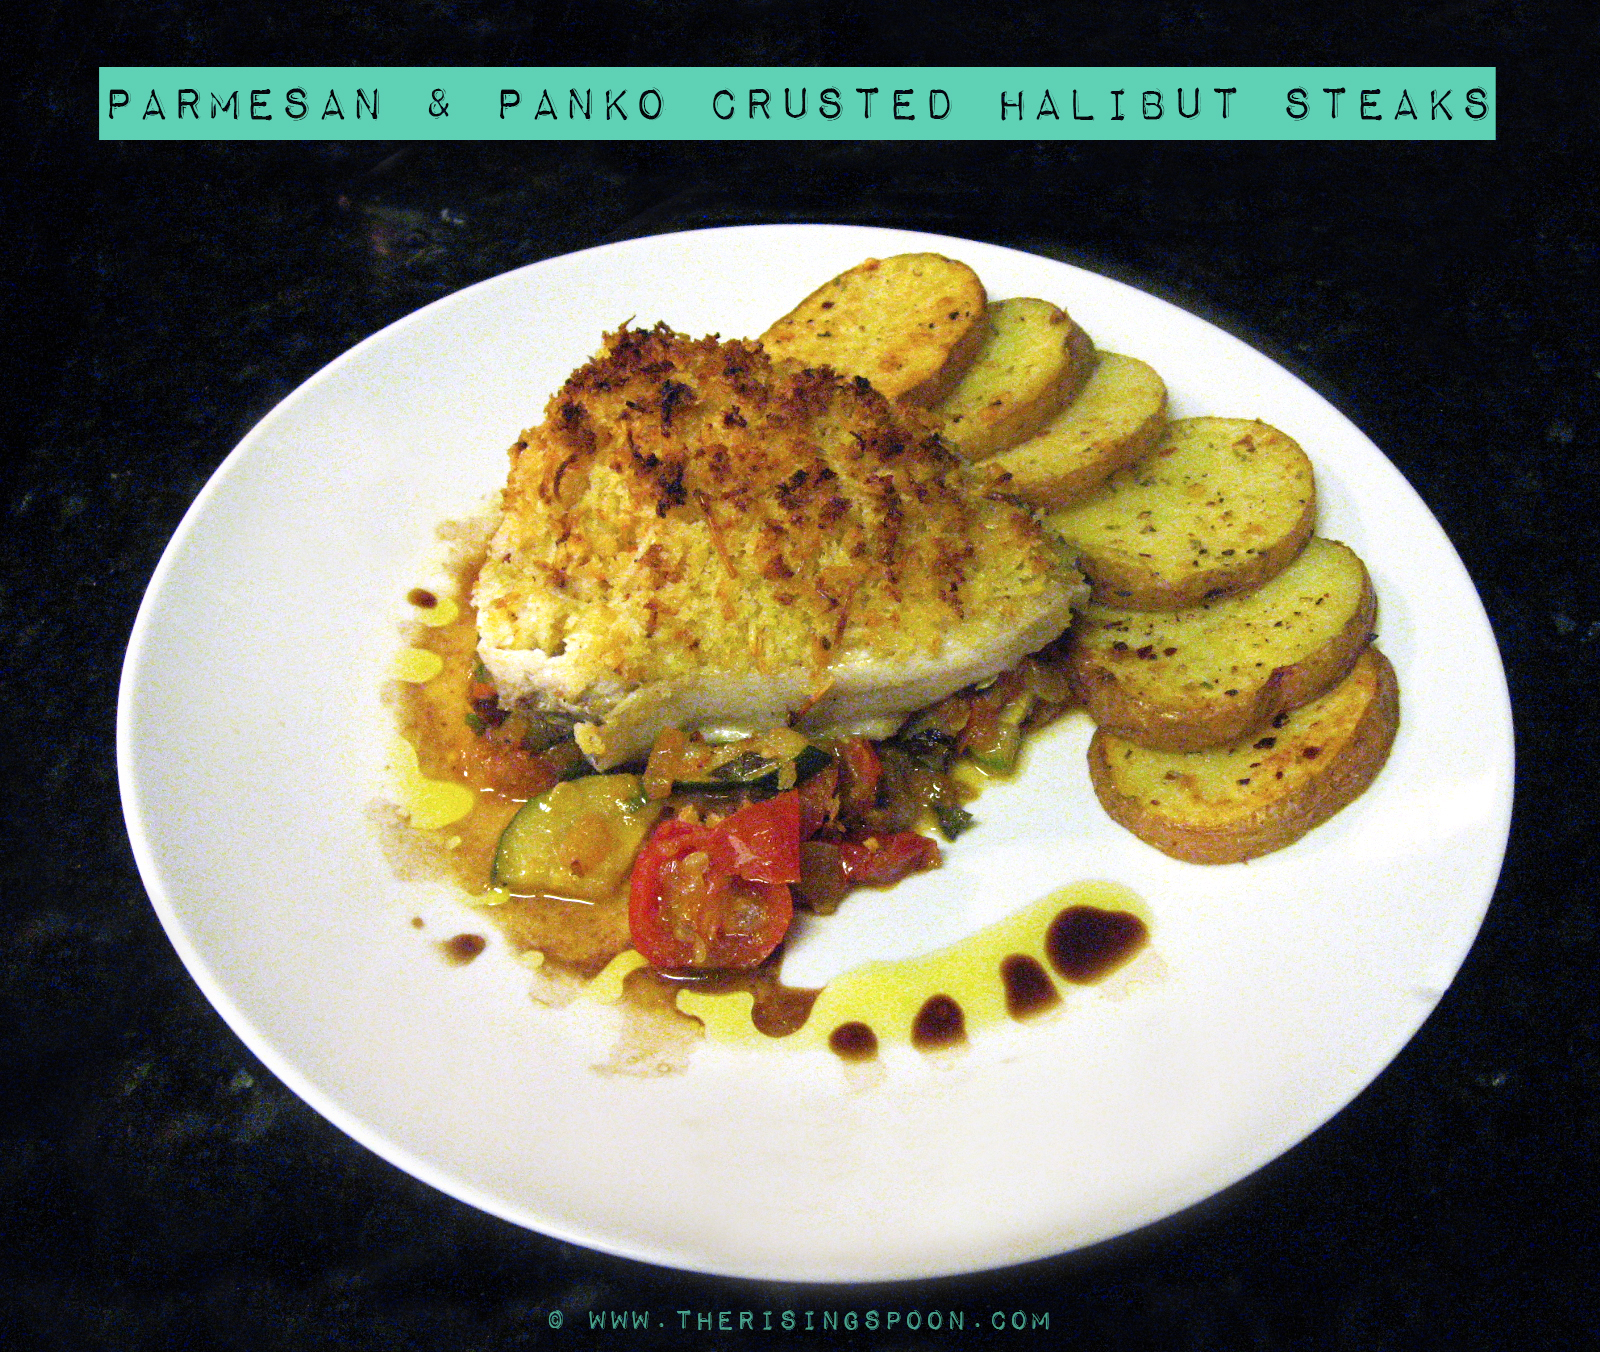 Parmesan & Panko-Crusted Halibut Steaks | The Rising Spoon: Parmesan ...